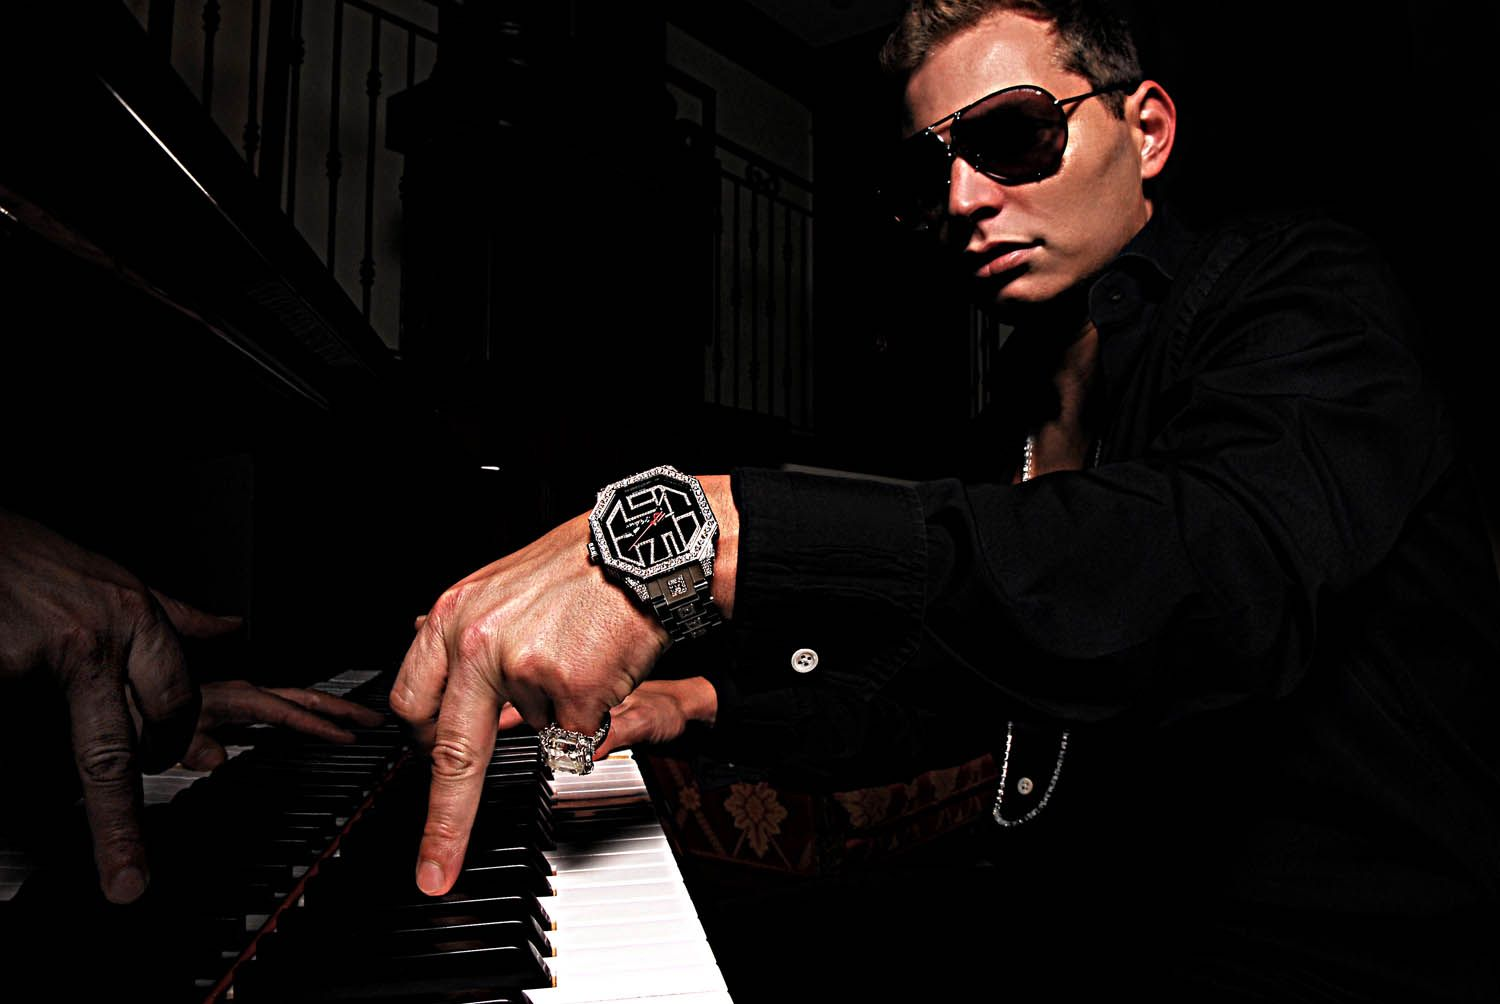 Superproducer: Scott storch on the piano | Hip hop | Mens